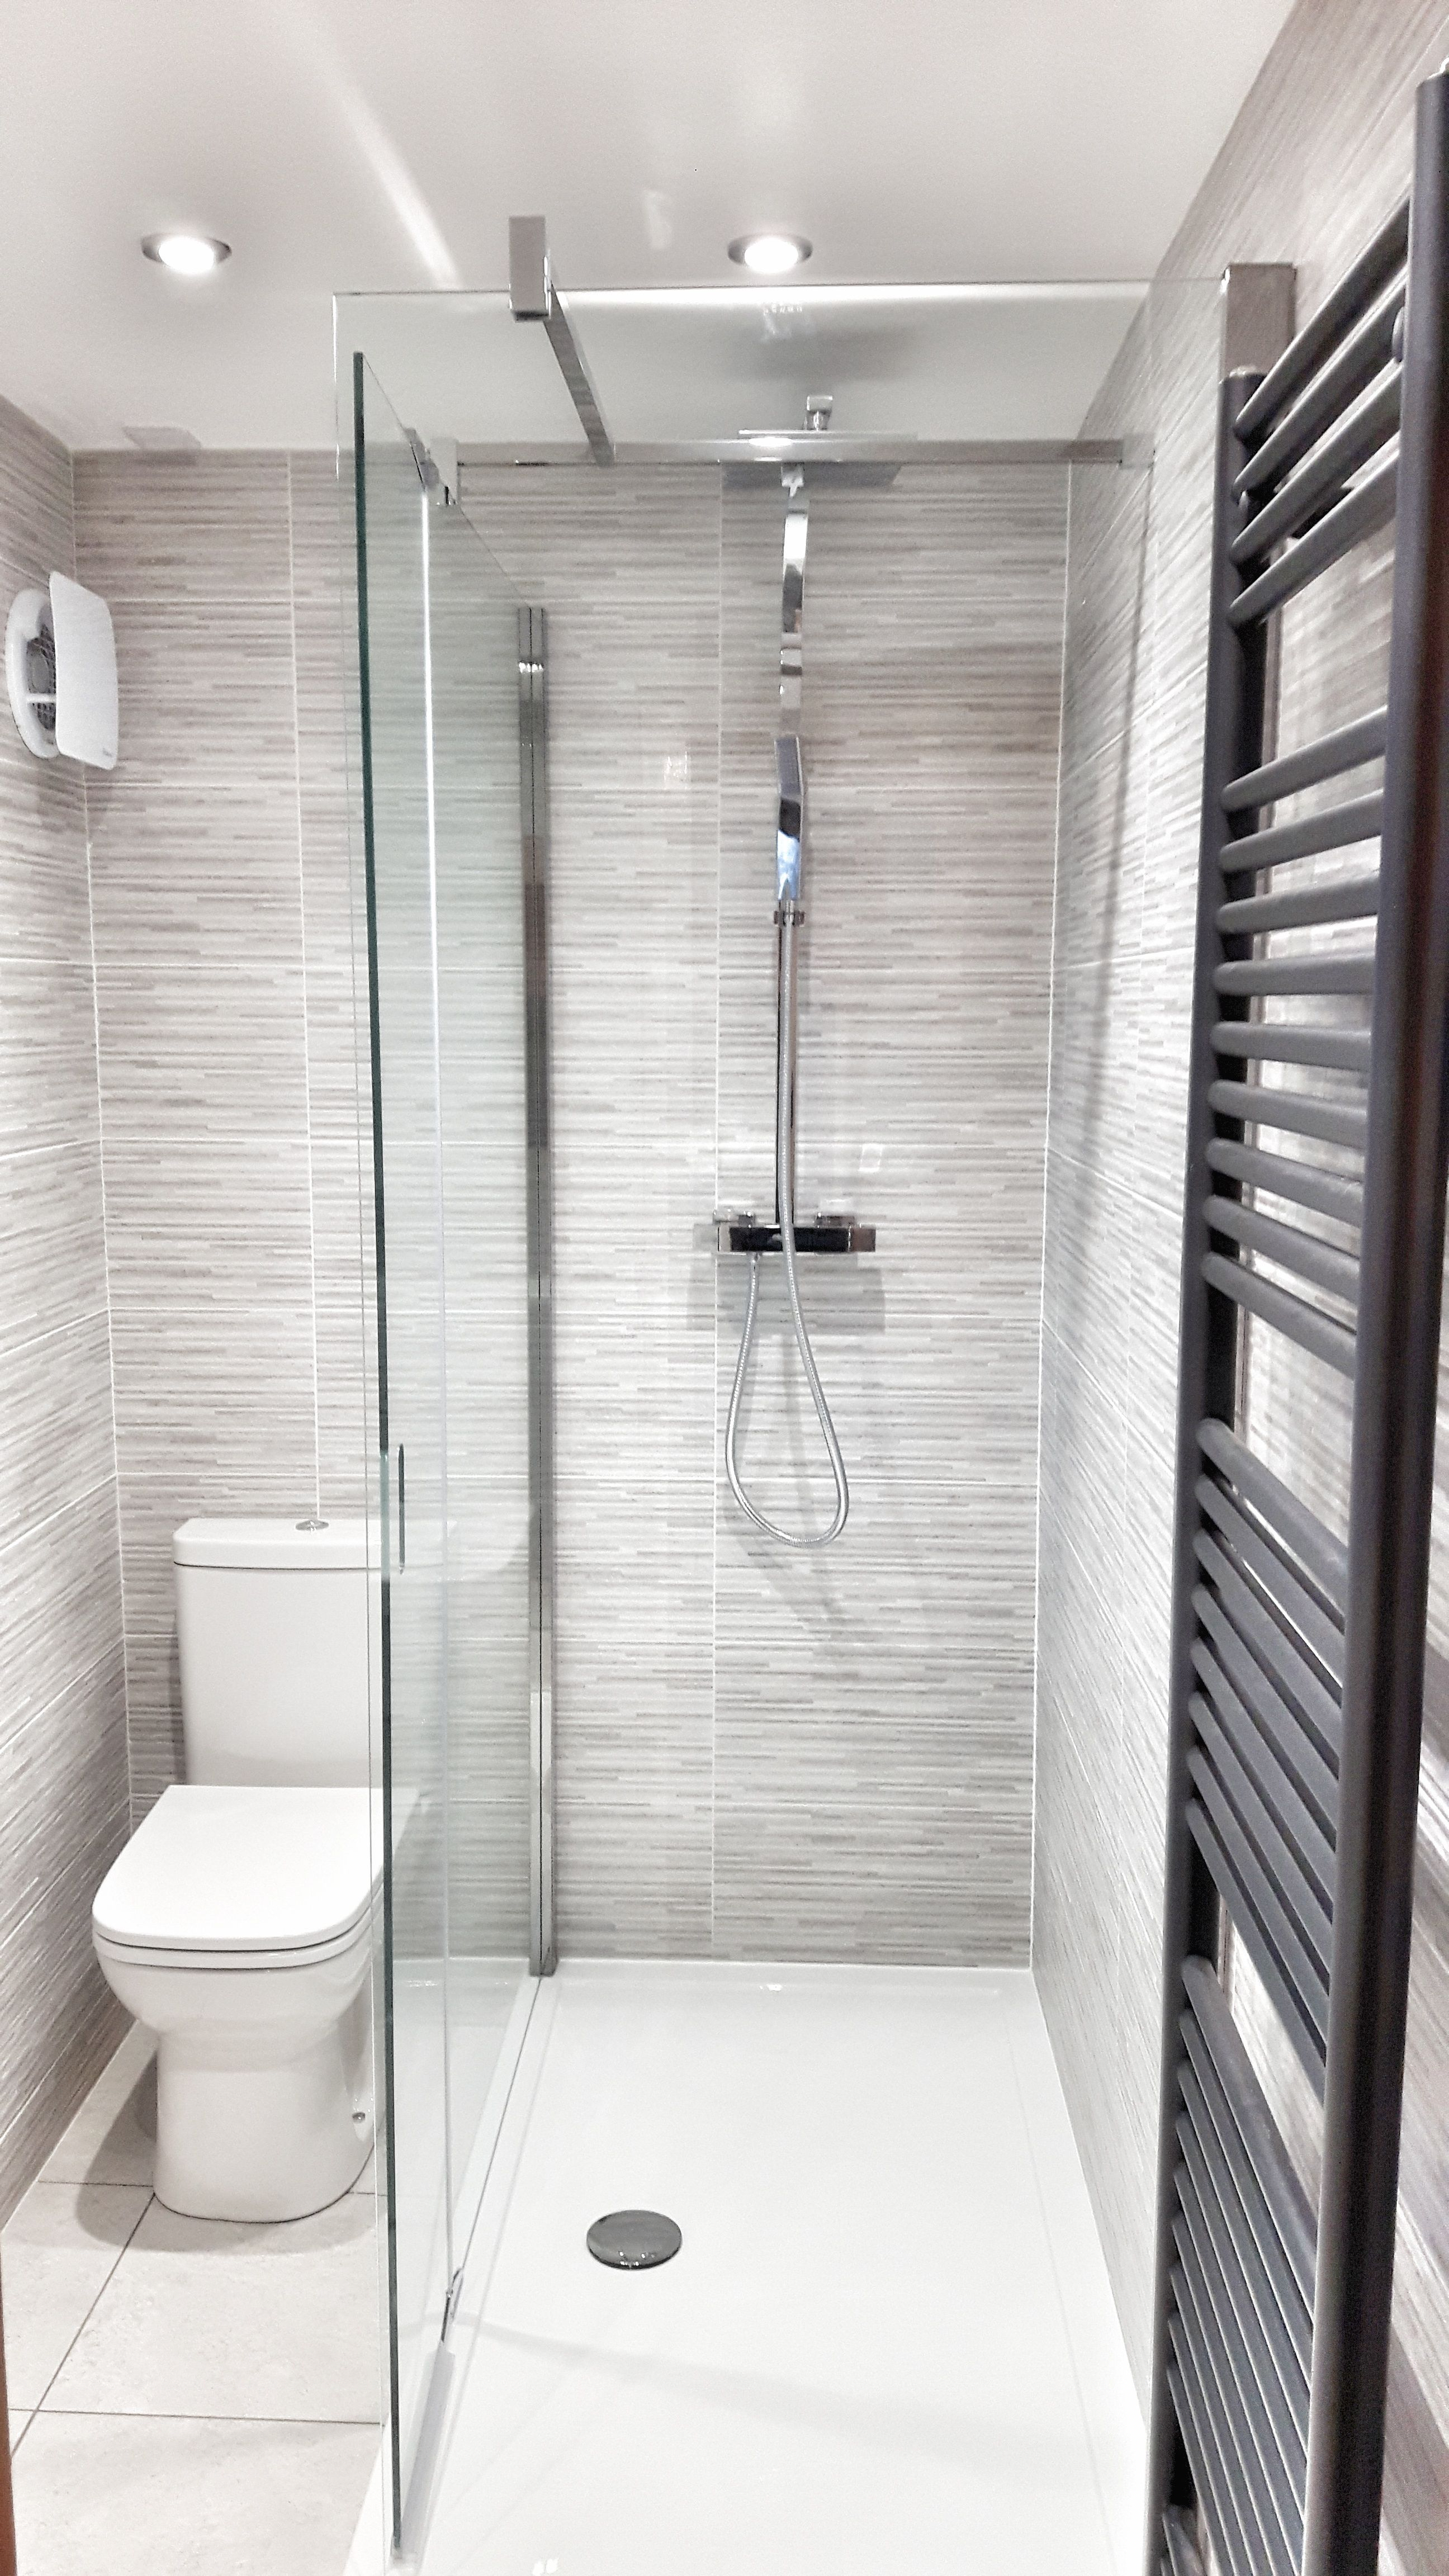 Pin by Gloria on Ensuite | Pinterest | Compact bathroom and Compact